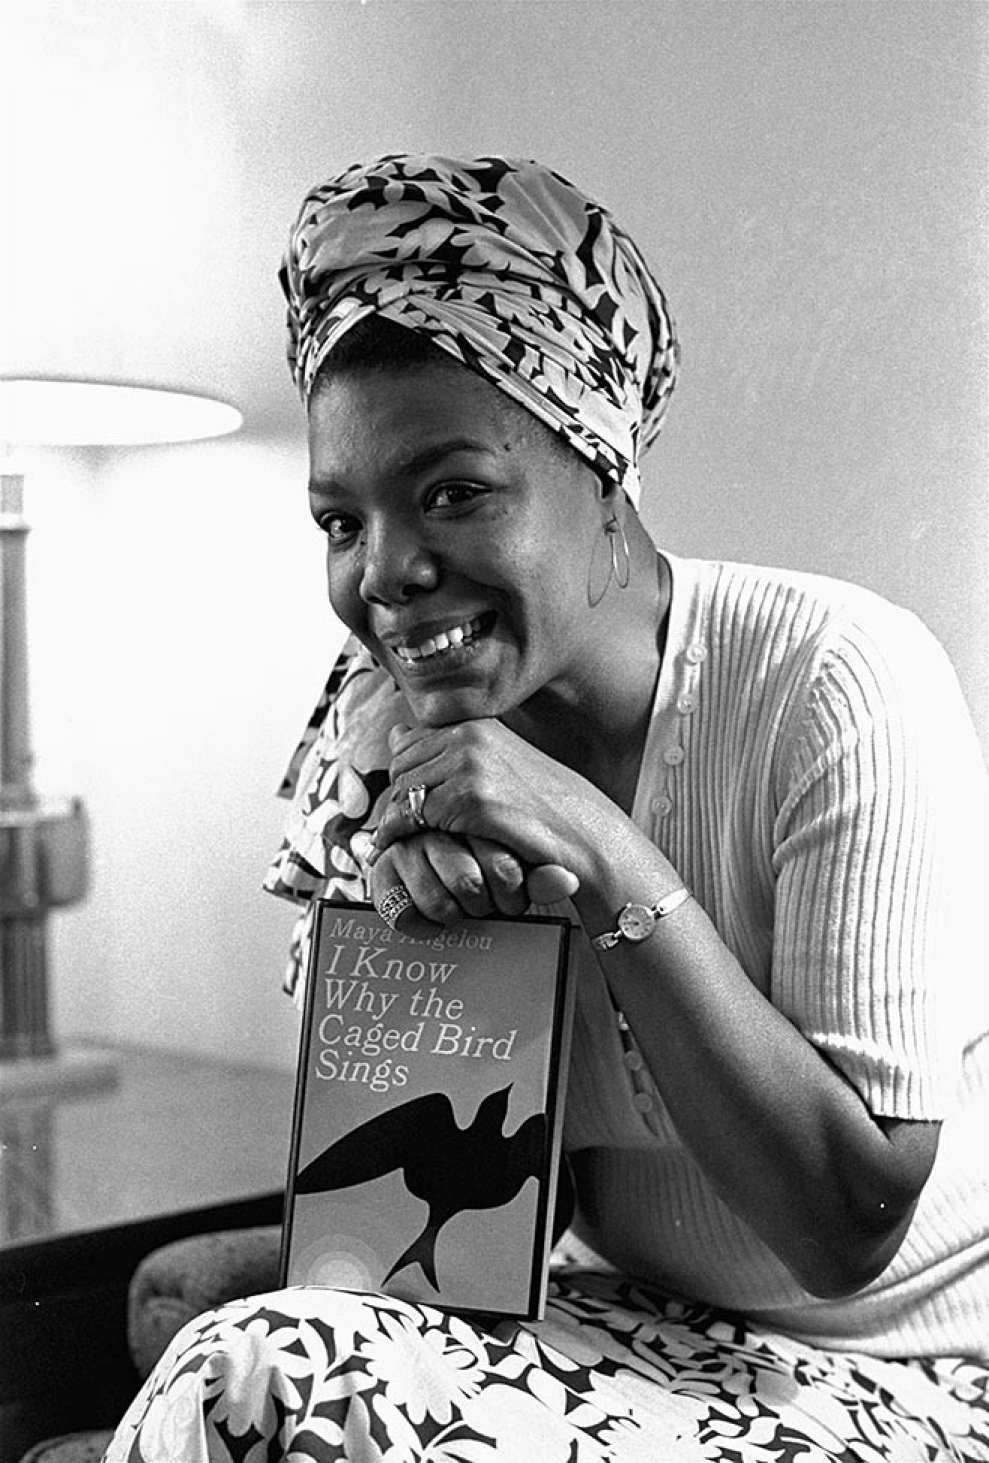 personal essay one day a angelou al jazeera america  a angelou in 1971 a copy of her book i know why the caged bird sings ap